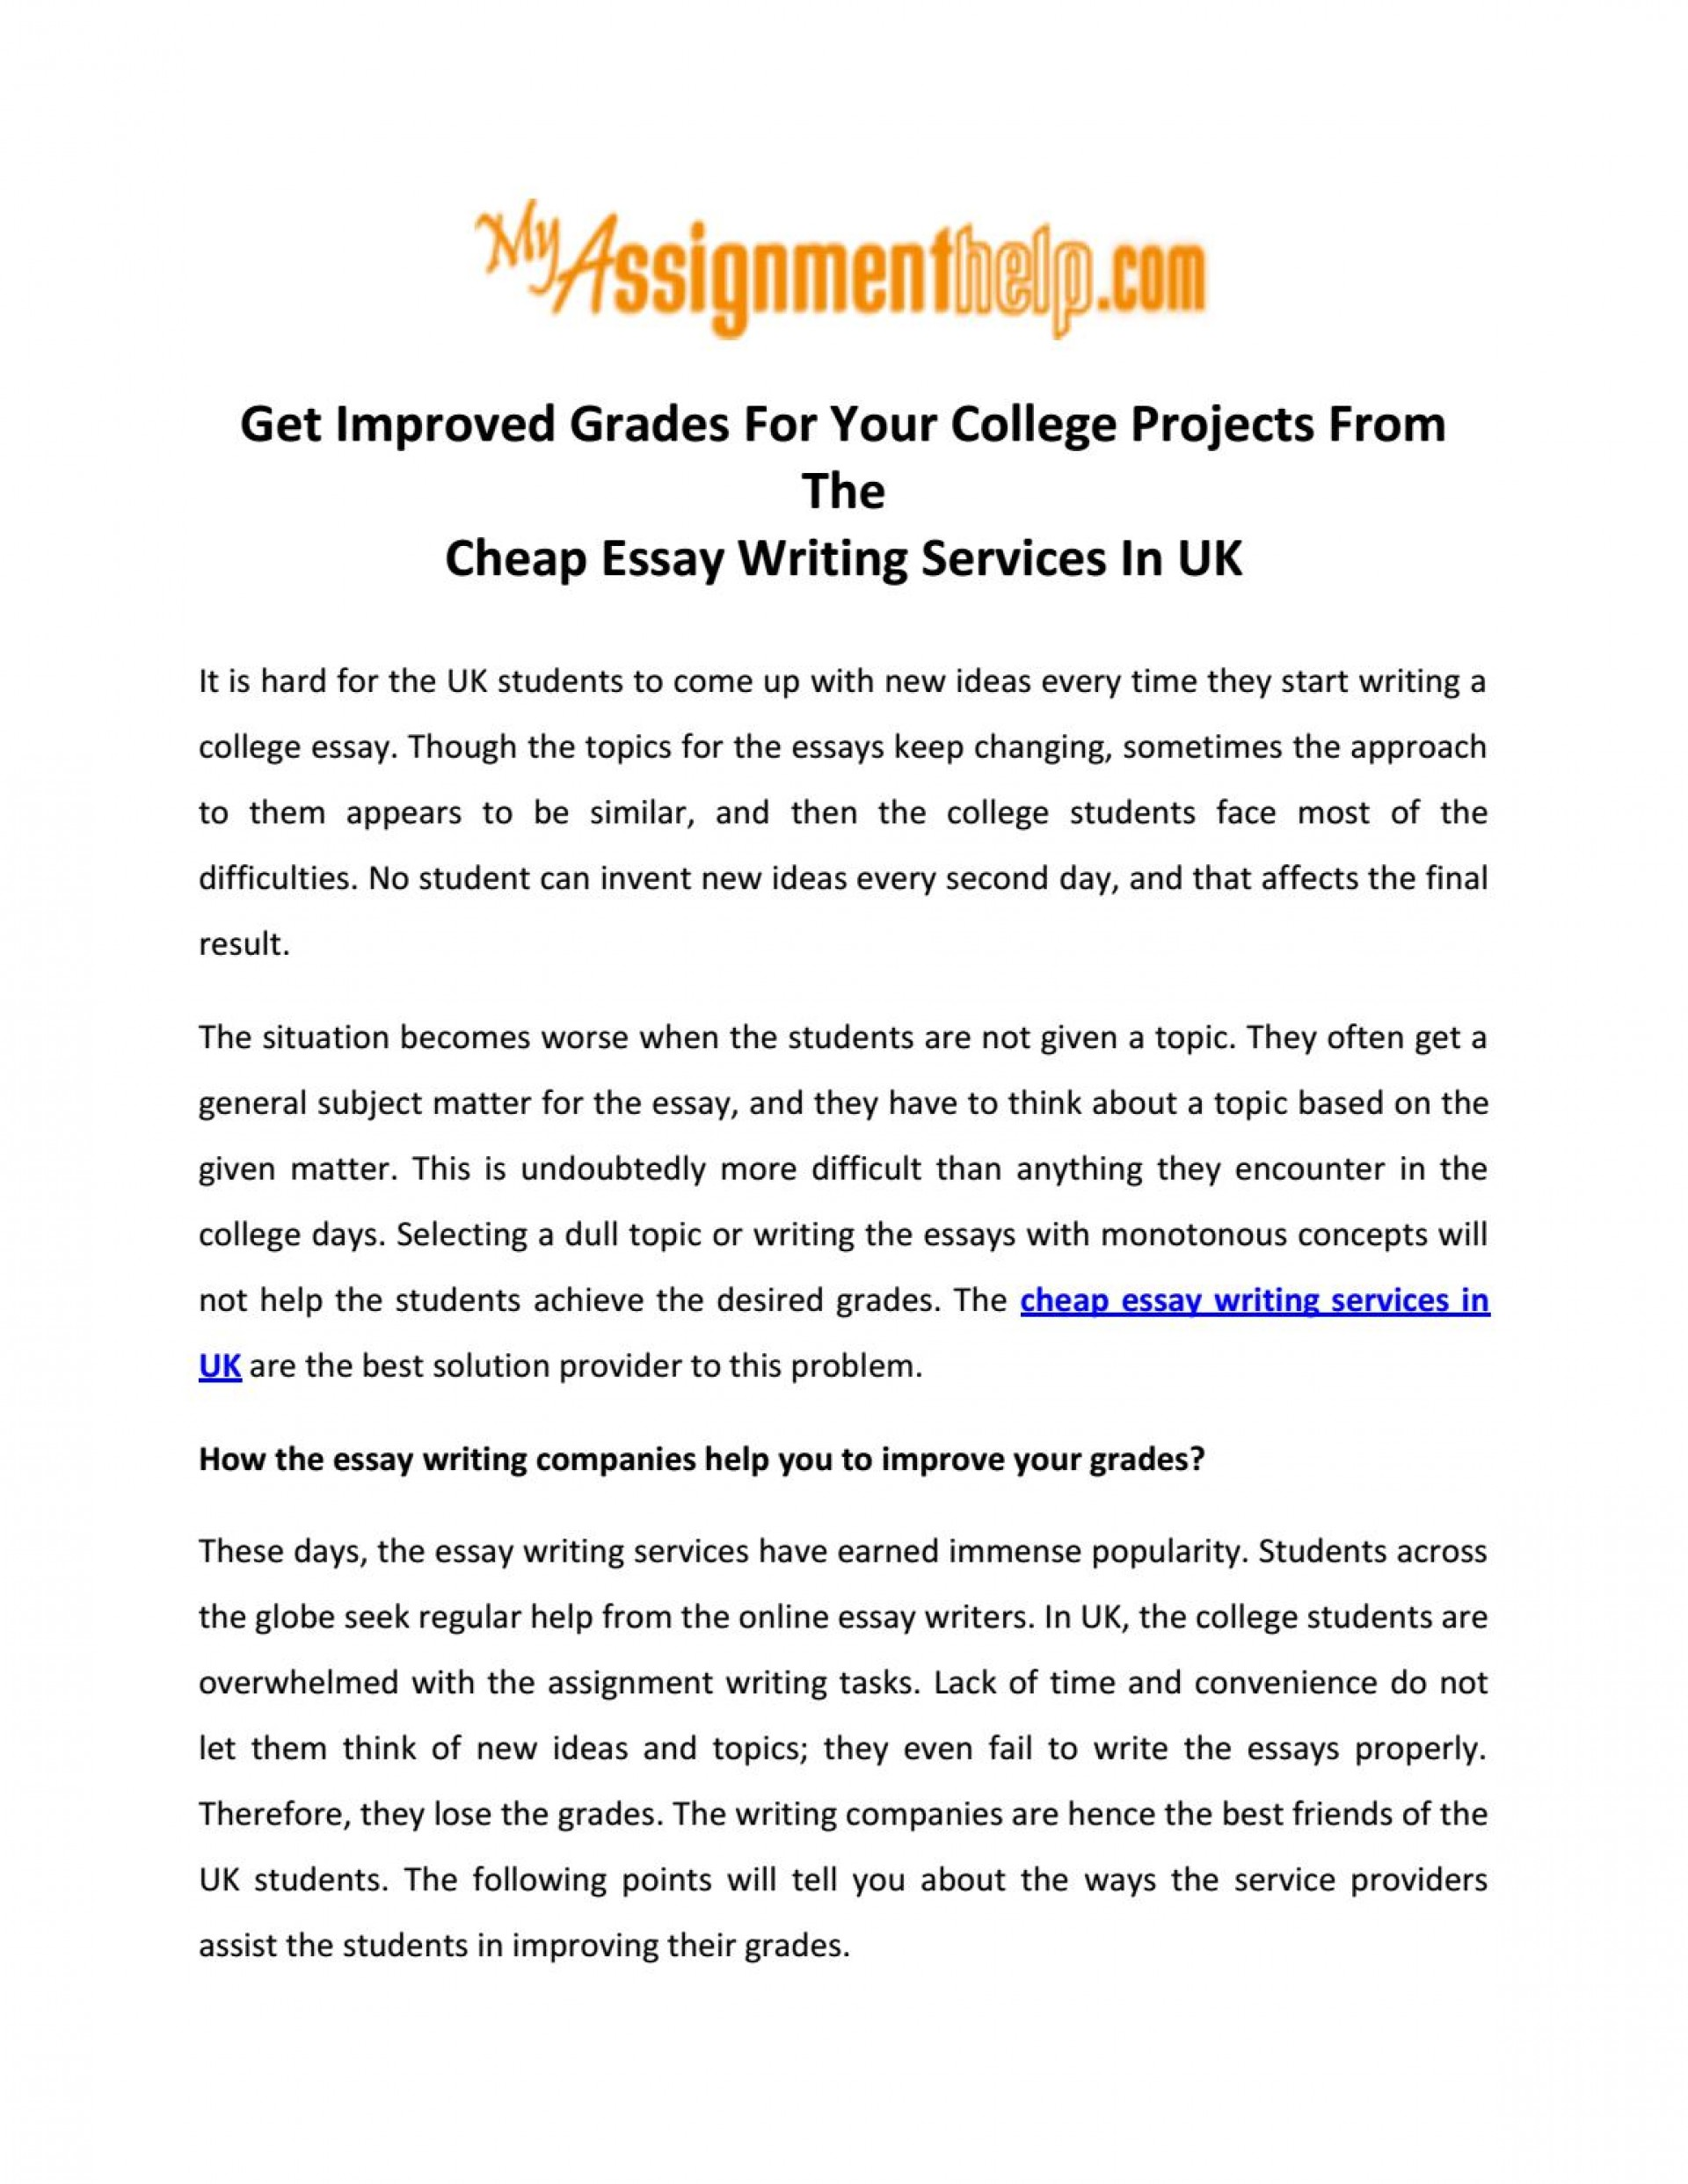 011 Page 1 Essay Example Cheap Writing Unusual Service Review Services Uk Australia 1920